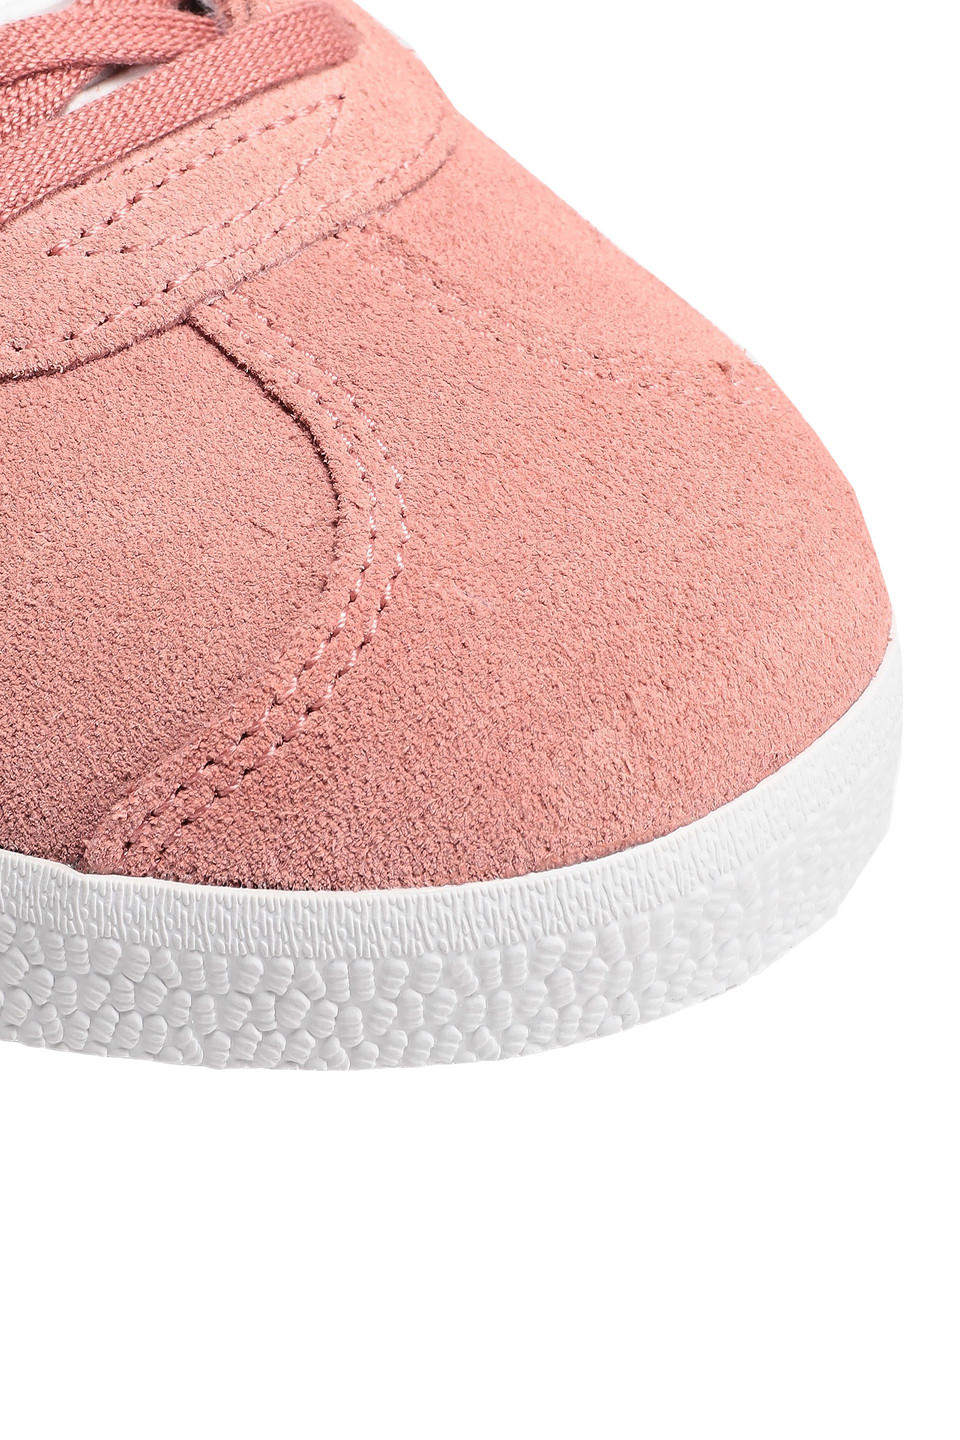 adidas Originals   Adidas Originals Woman Gazelle Leather-trimmed Suede Sneakers Antique Rose   Clouty